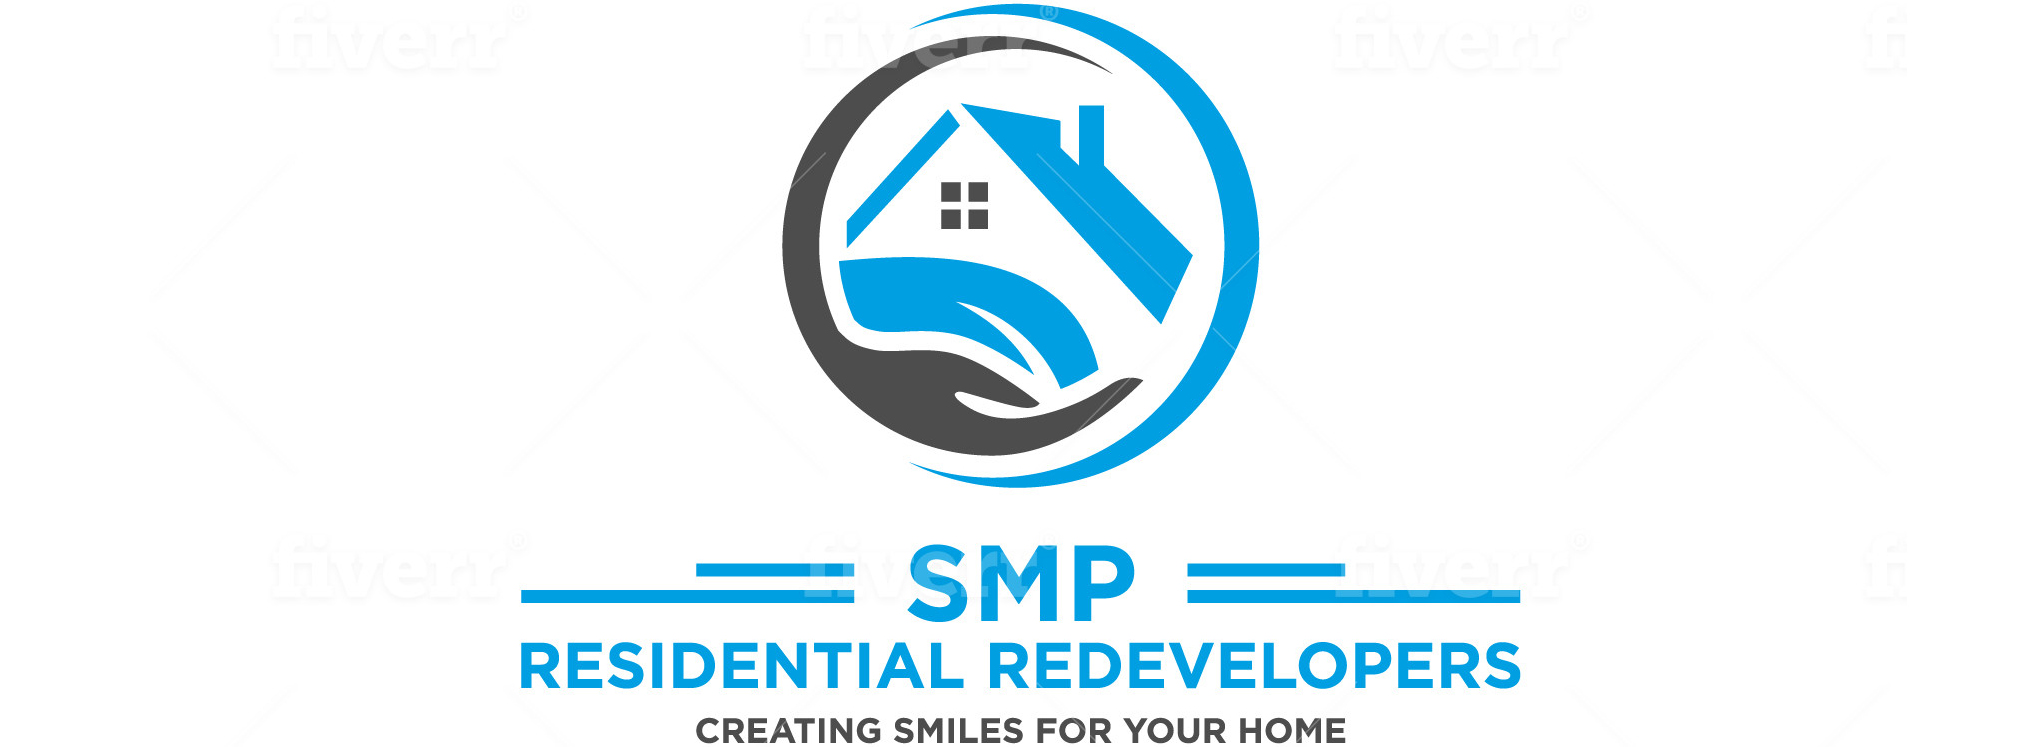 SMP Residential Redevelopers